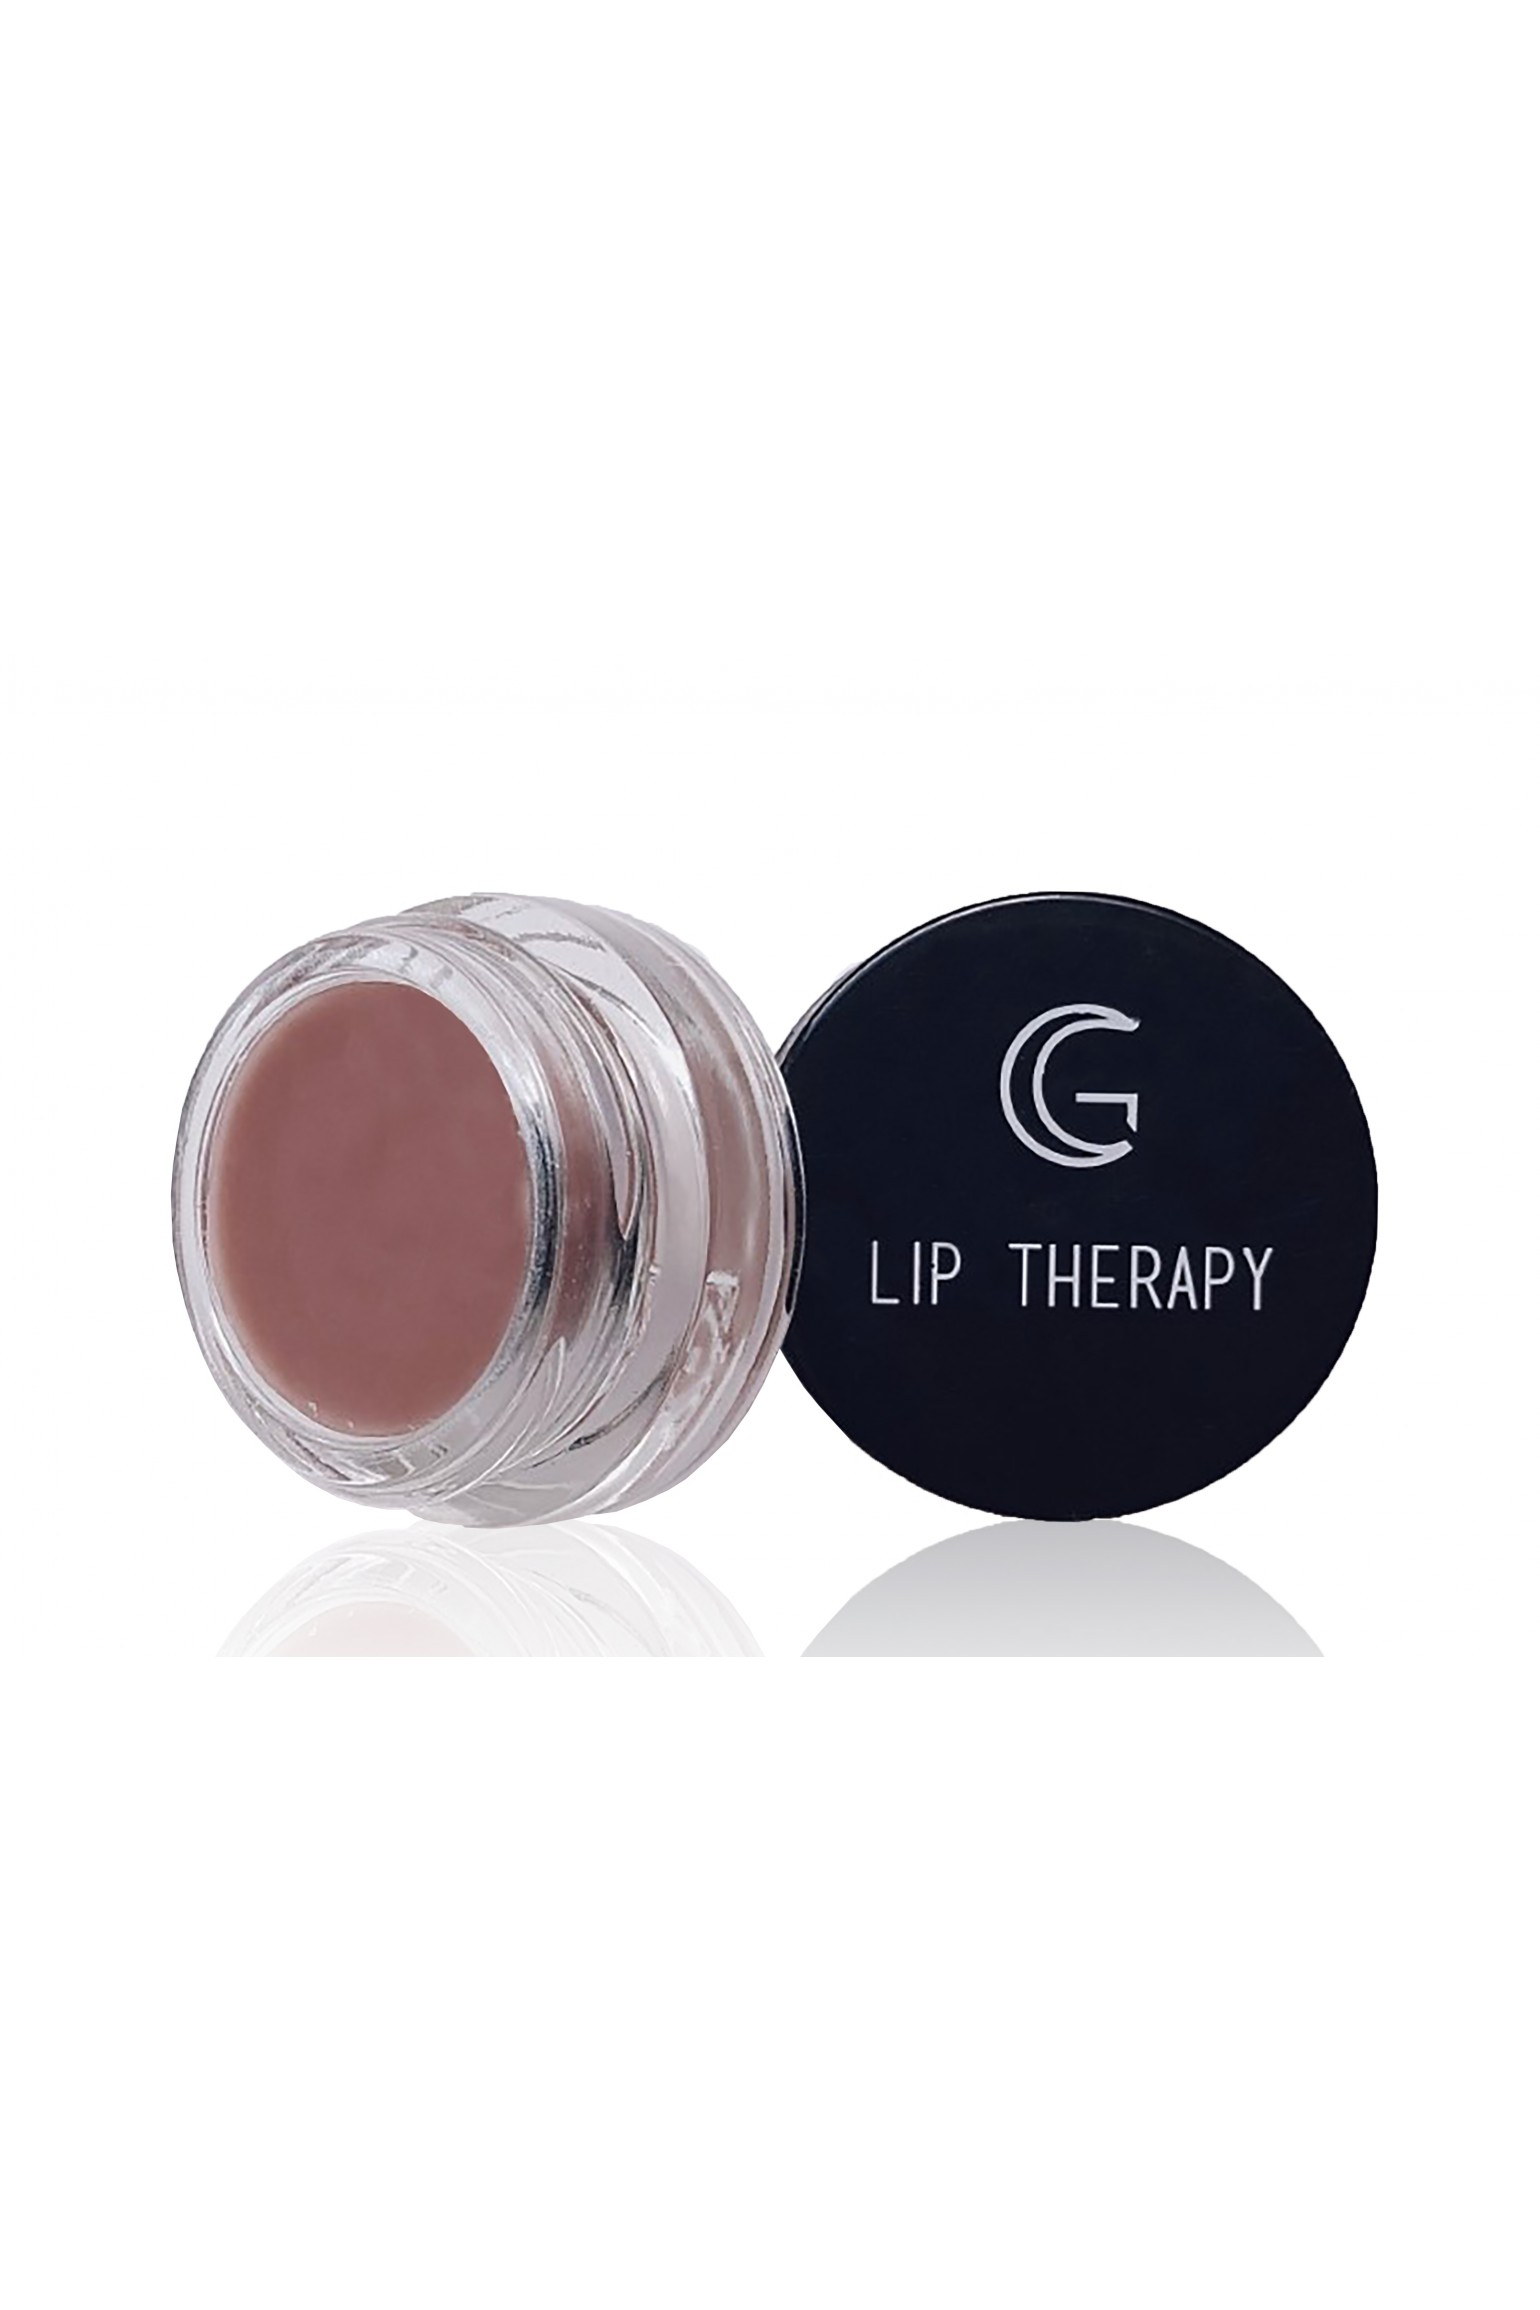 The Little Gifter Lip Therapy Blueberry